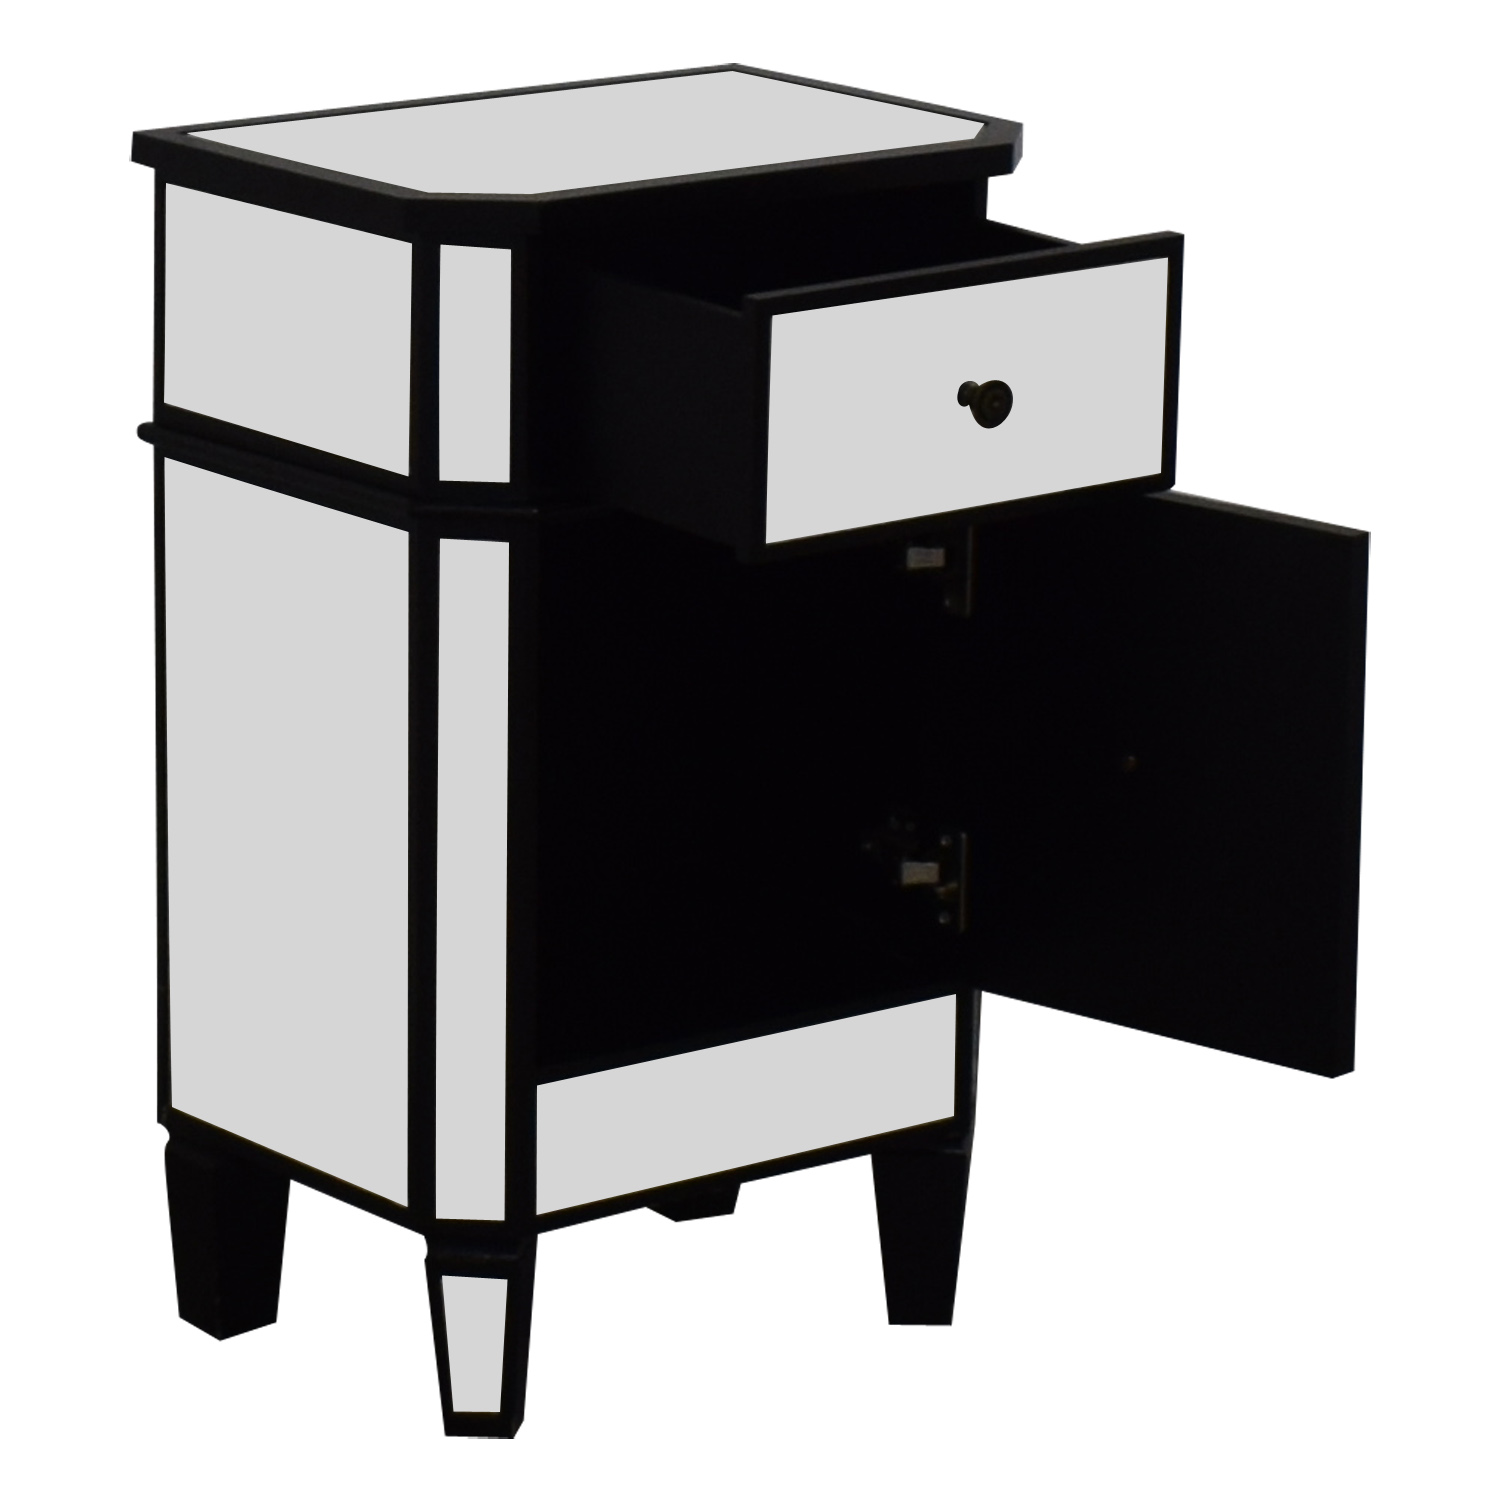 Mirrored Nightstand dimensions